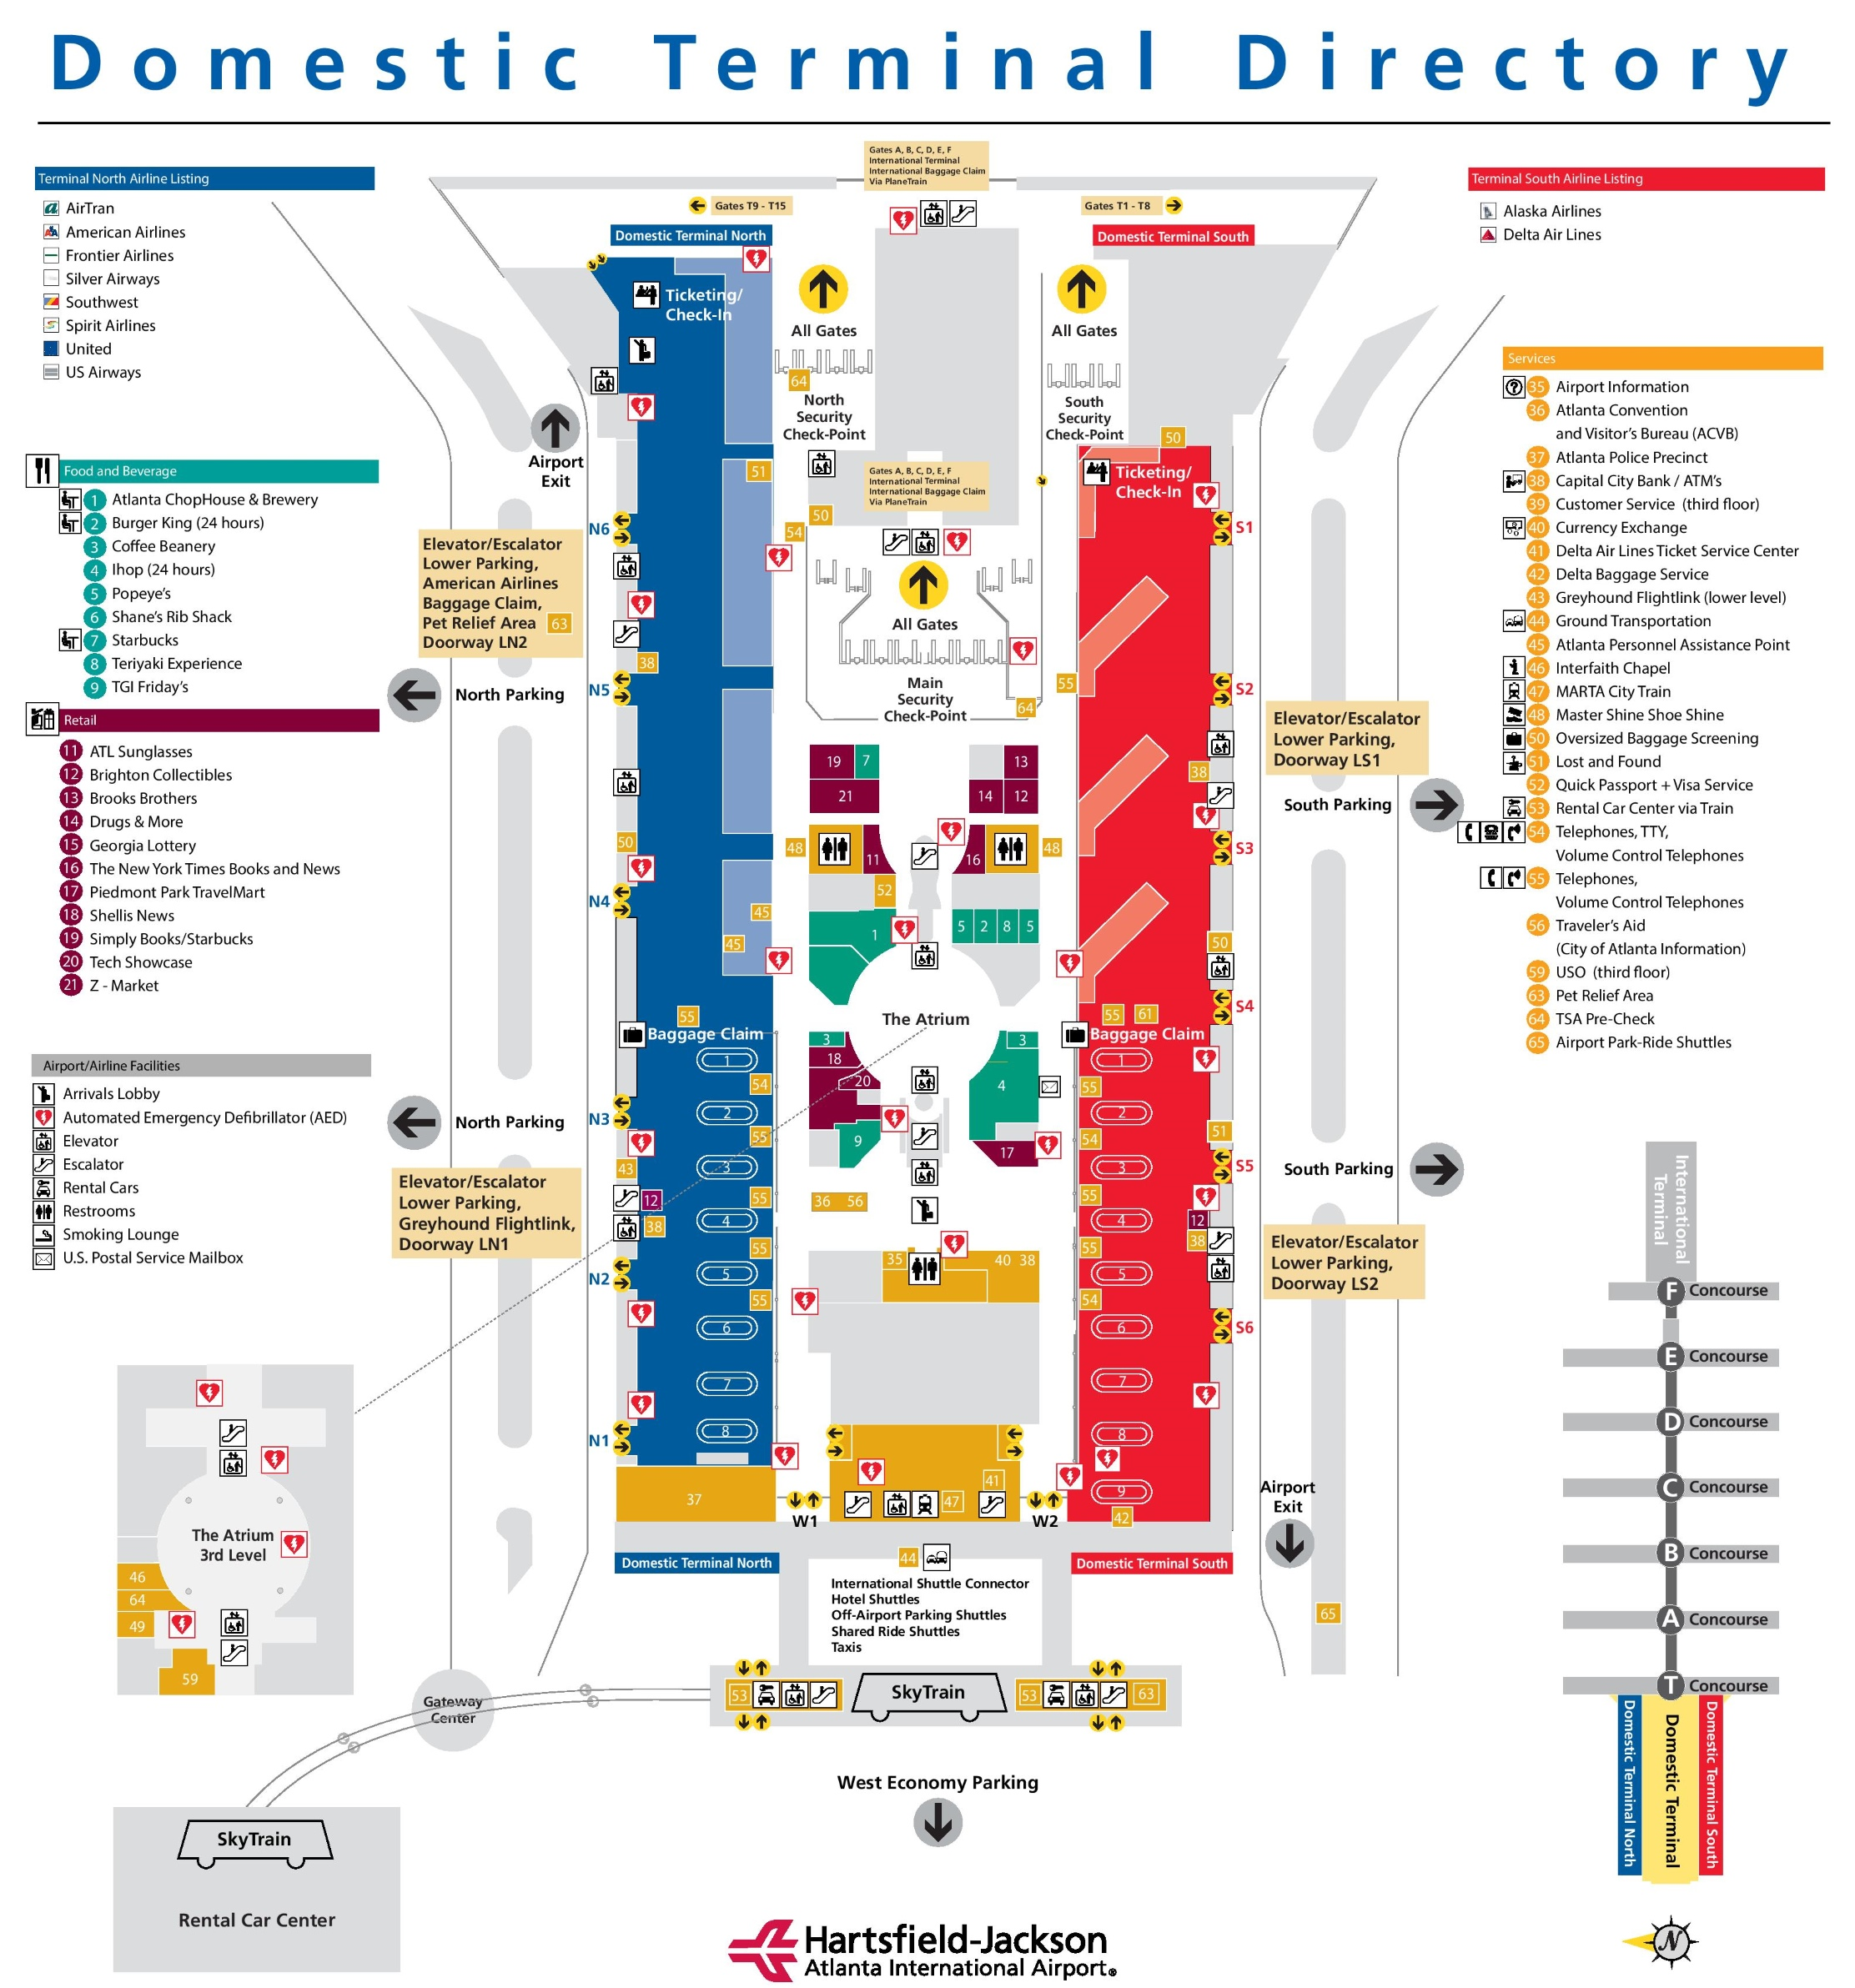 Atlanta Airport Domestic Terminal Map Atlanta airport main terminal map